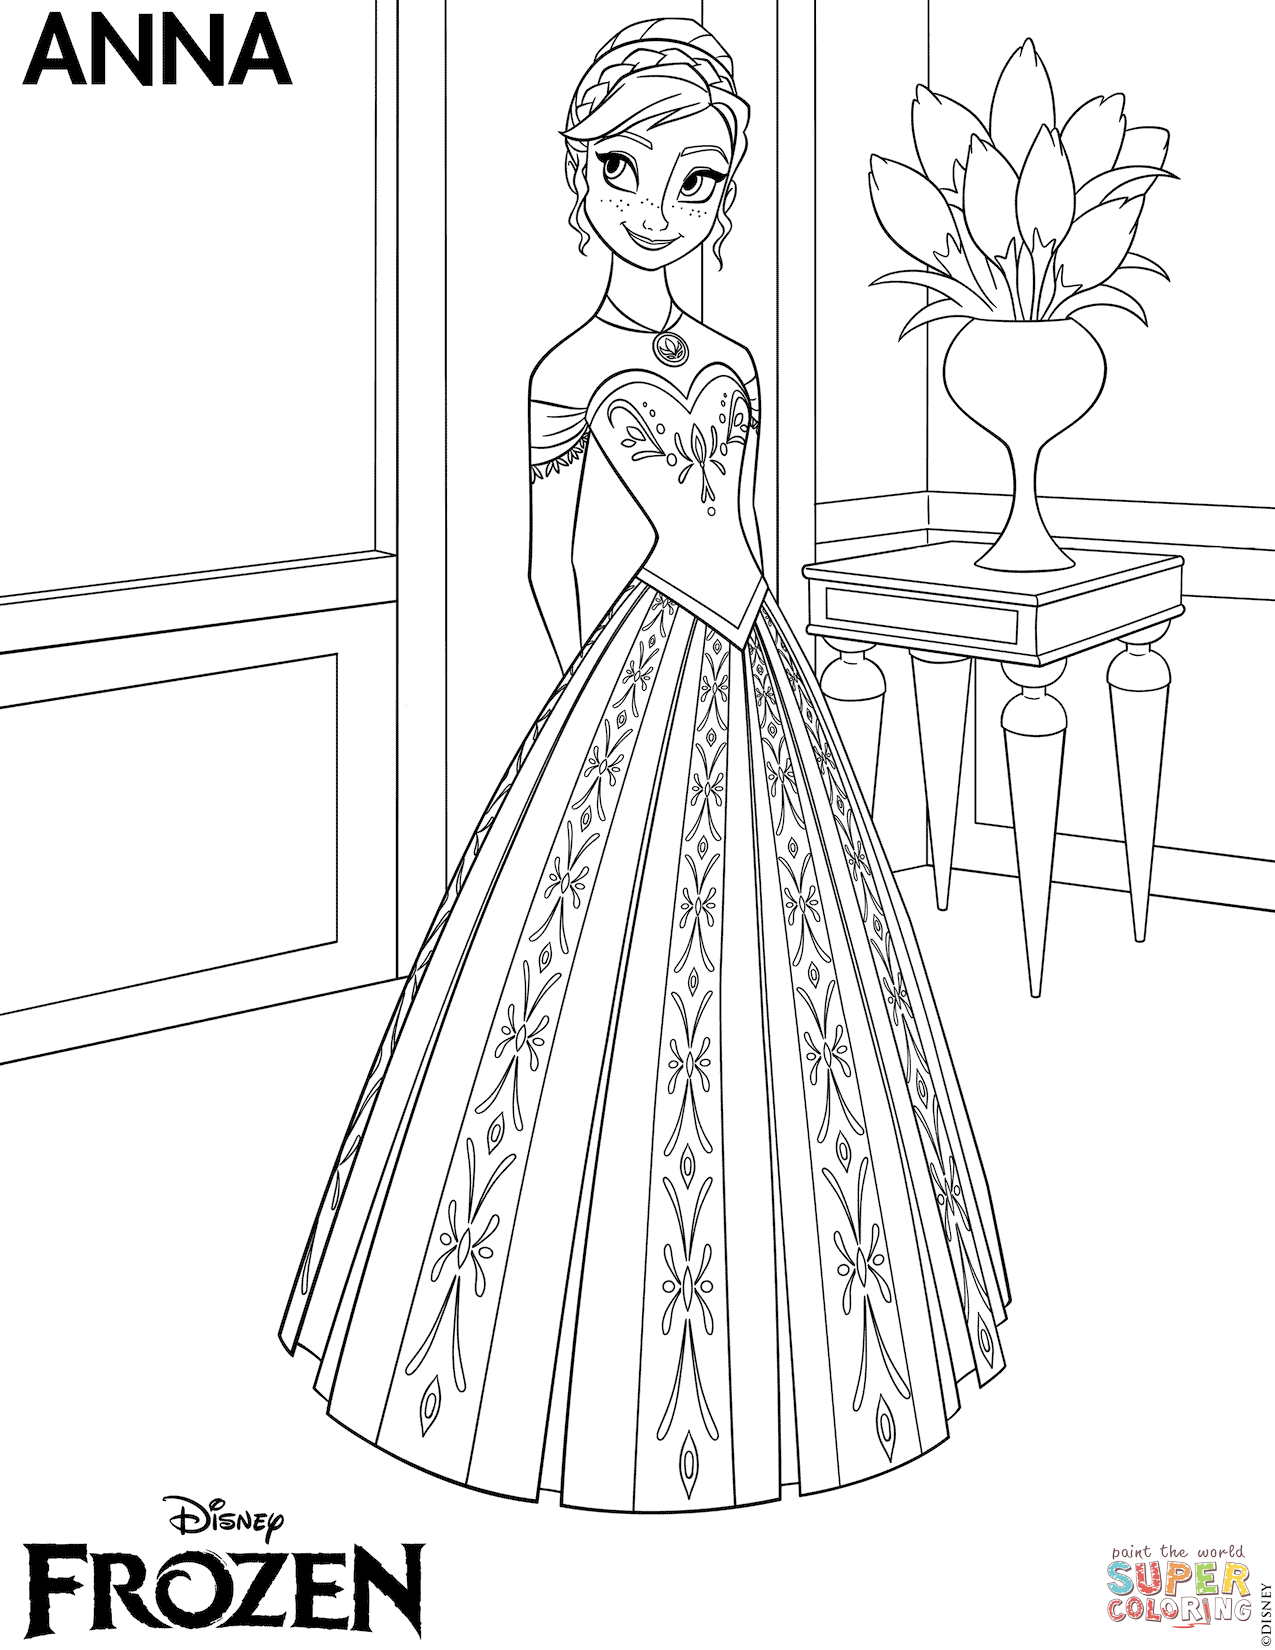 Frozen (Movie) coloring #15, Download drawings